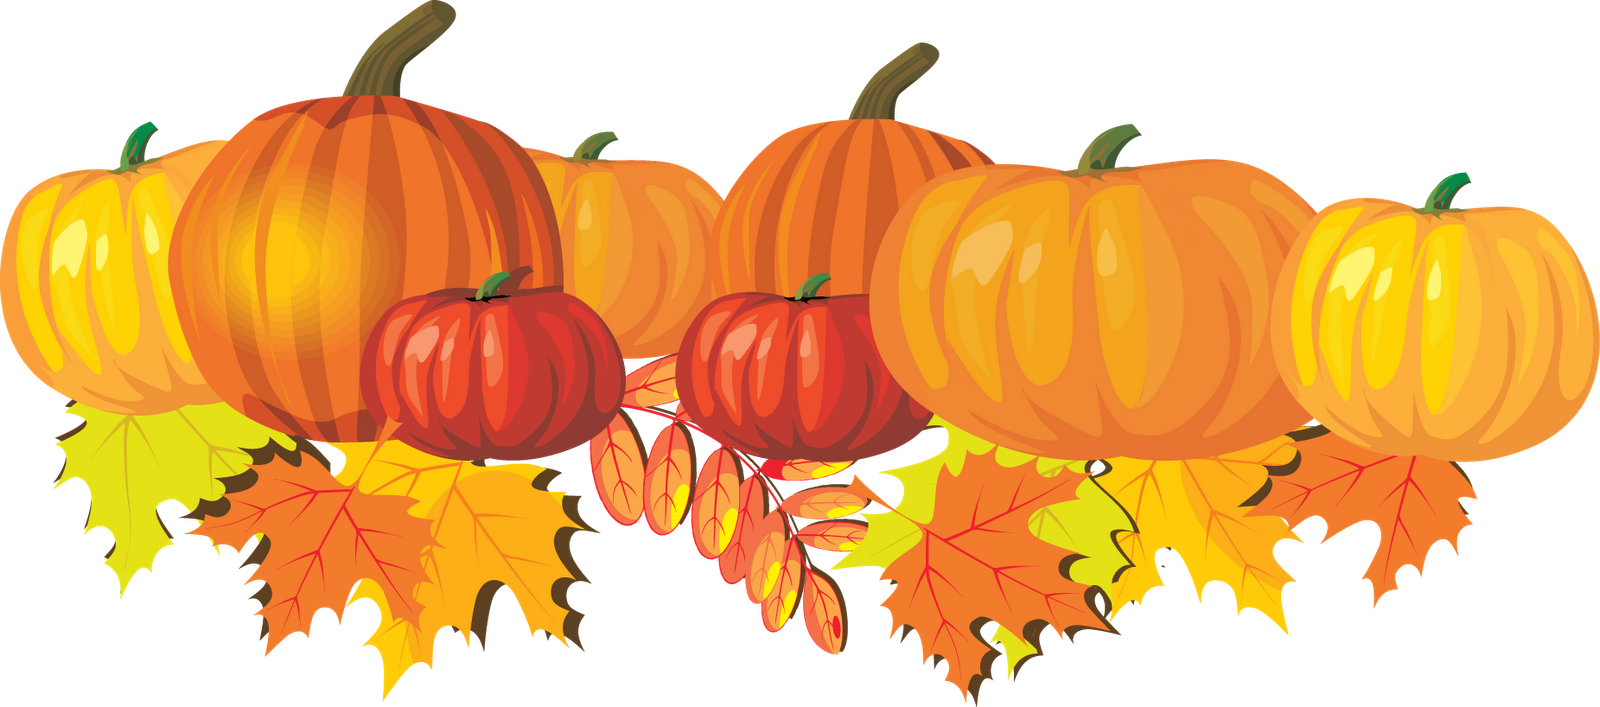 Free Pumpkin Patch Cliparts, Download Free Clip Art, Free